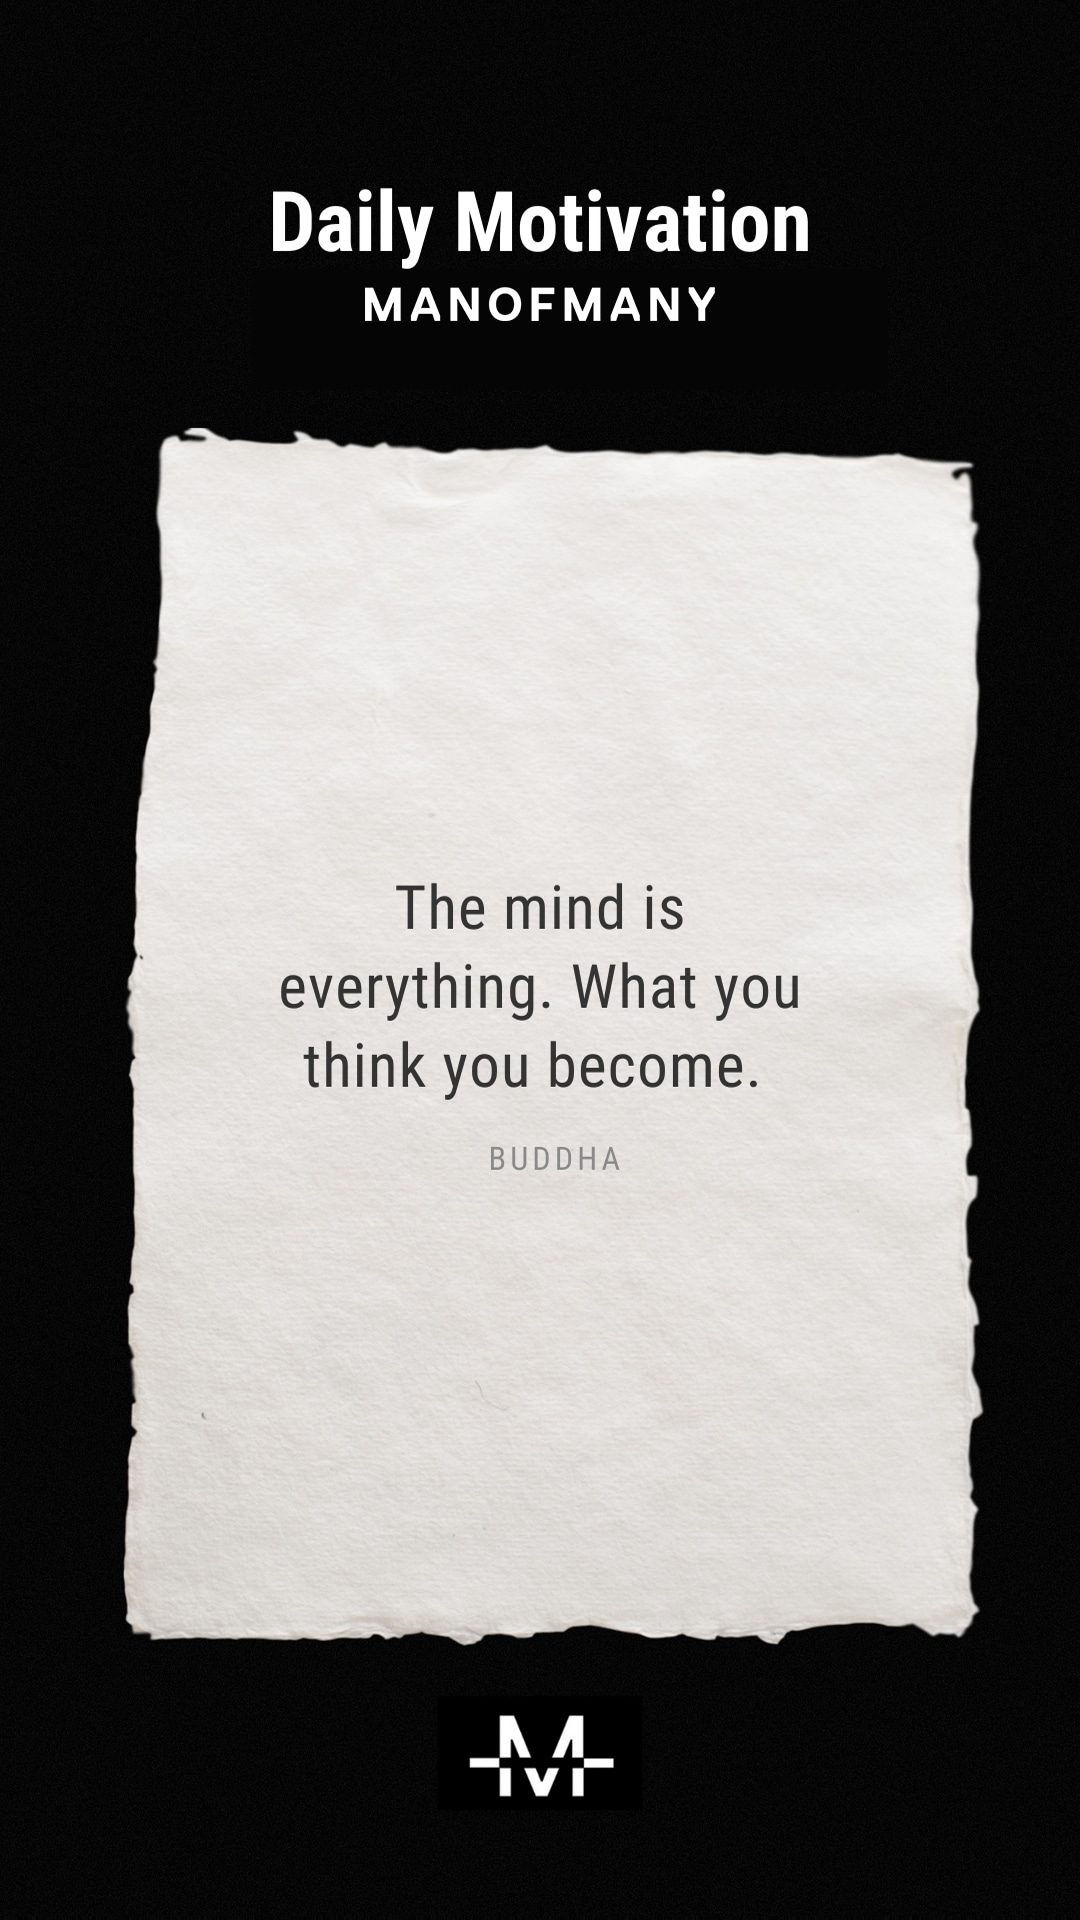 The mind is everything. What you think you become. –Buddha quote